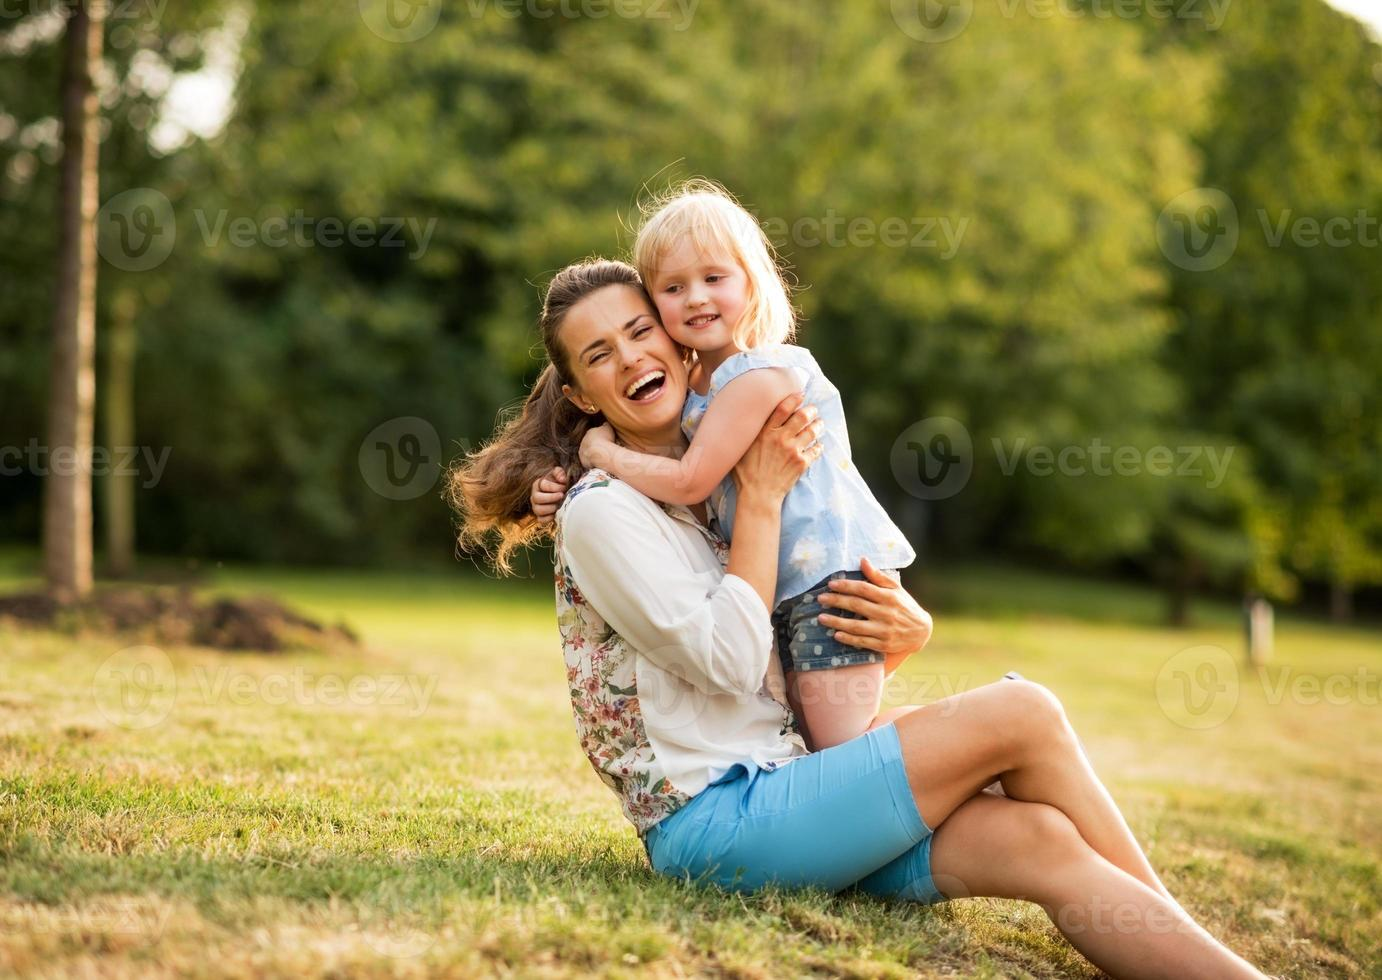 portrait of happy mother and baby girl hugging in park photo